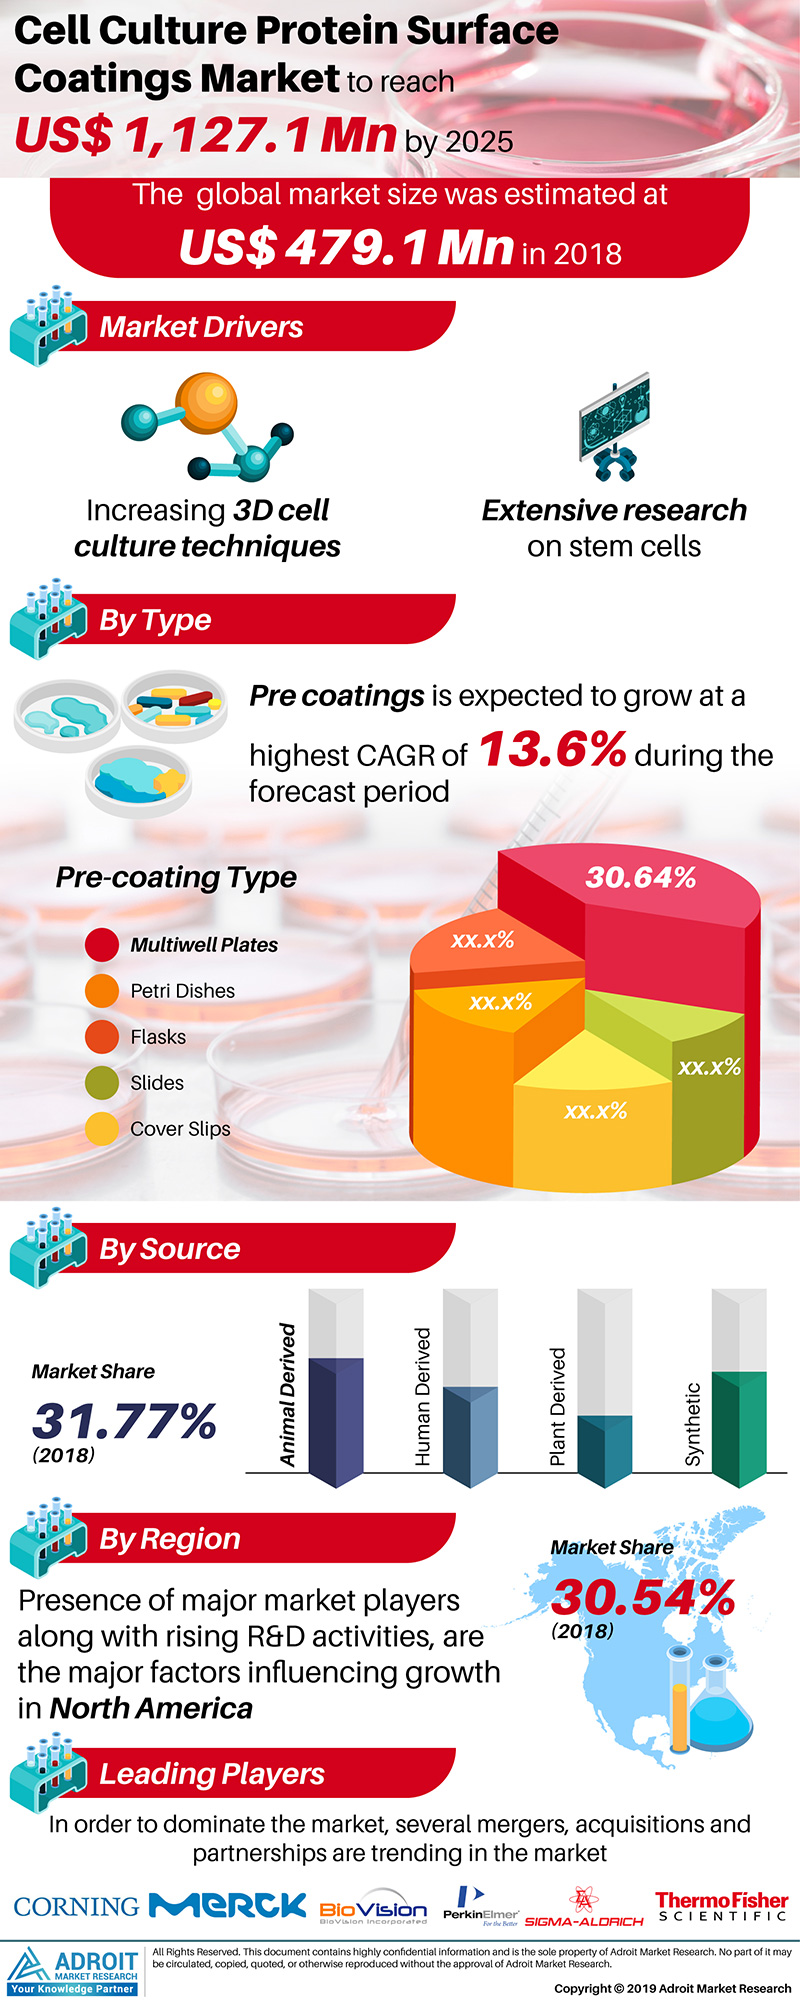 Global Cell Culture Protein Surface Coatings Market Size 2017 By Type, Pre Coatings, End-Use, Region and Forecast 2019 to 2025